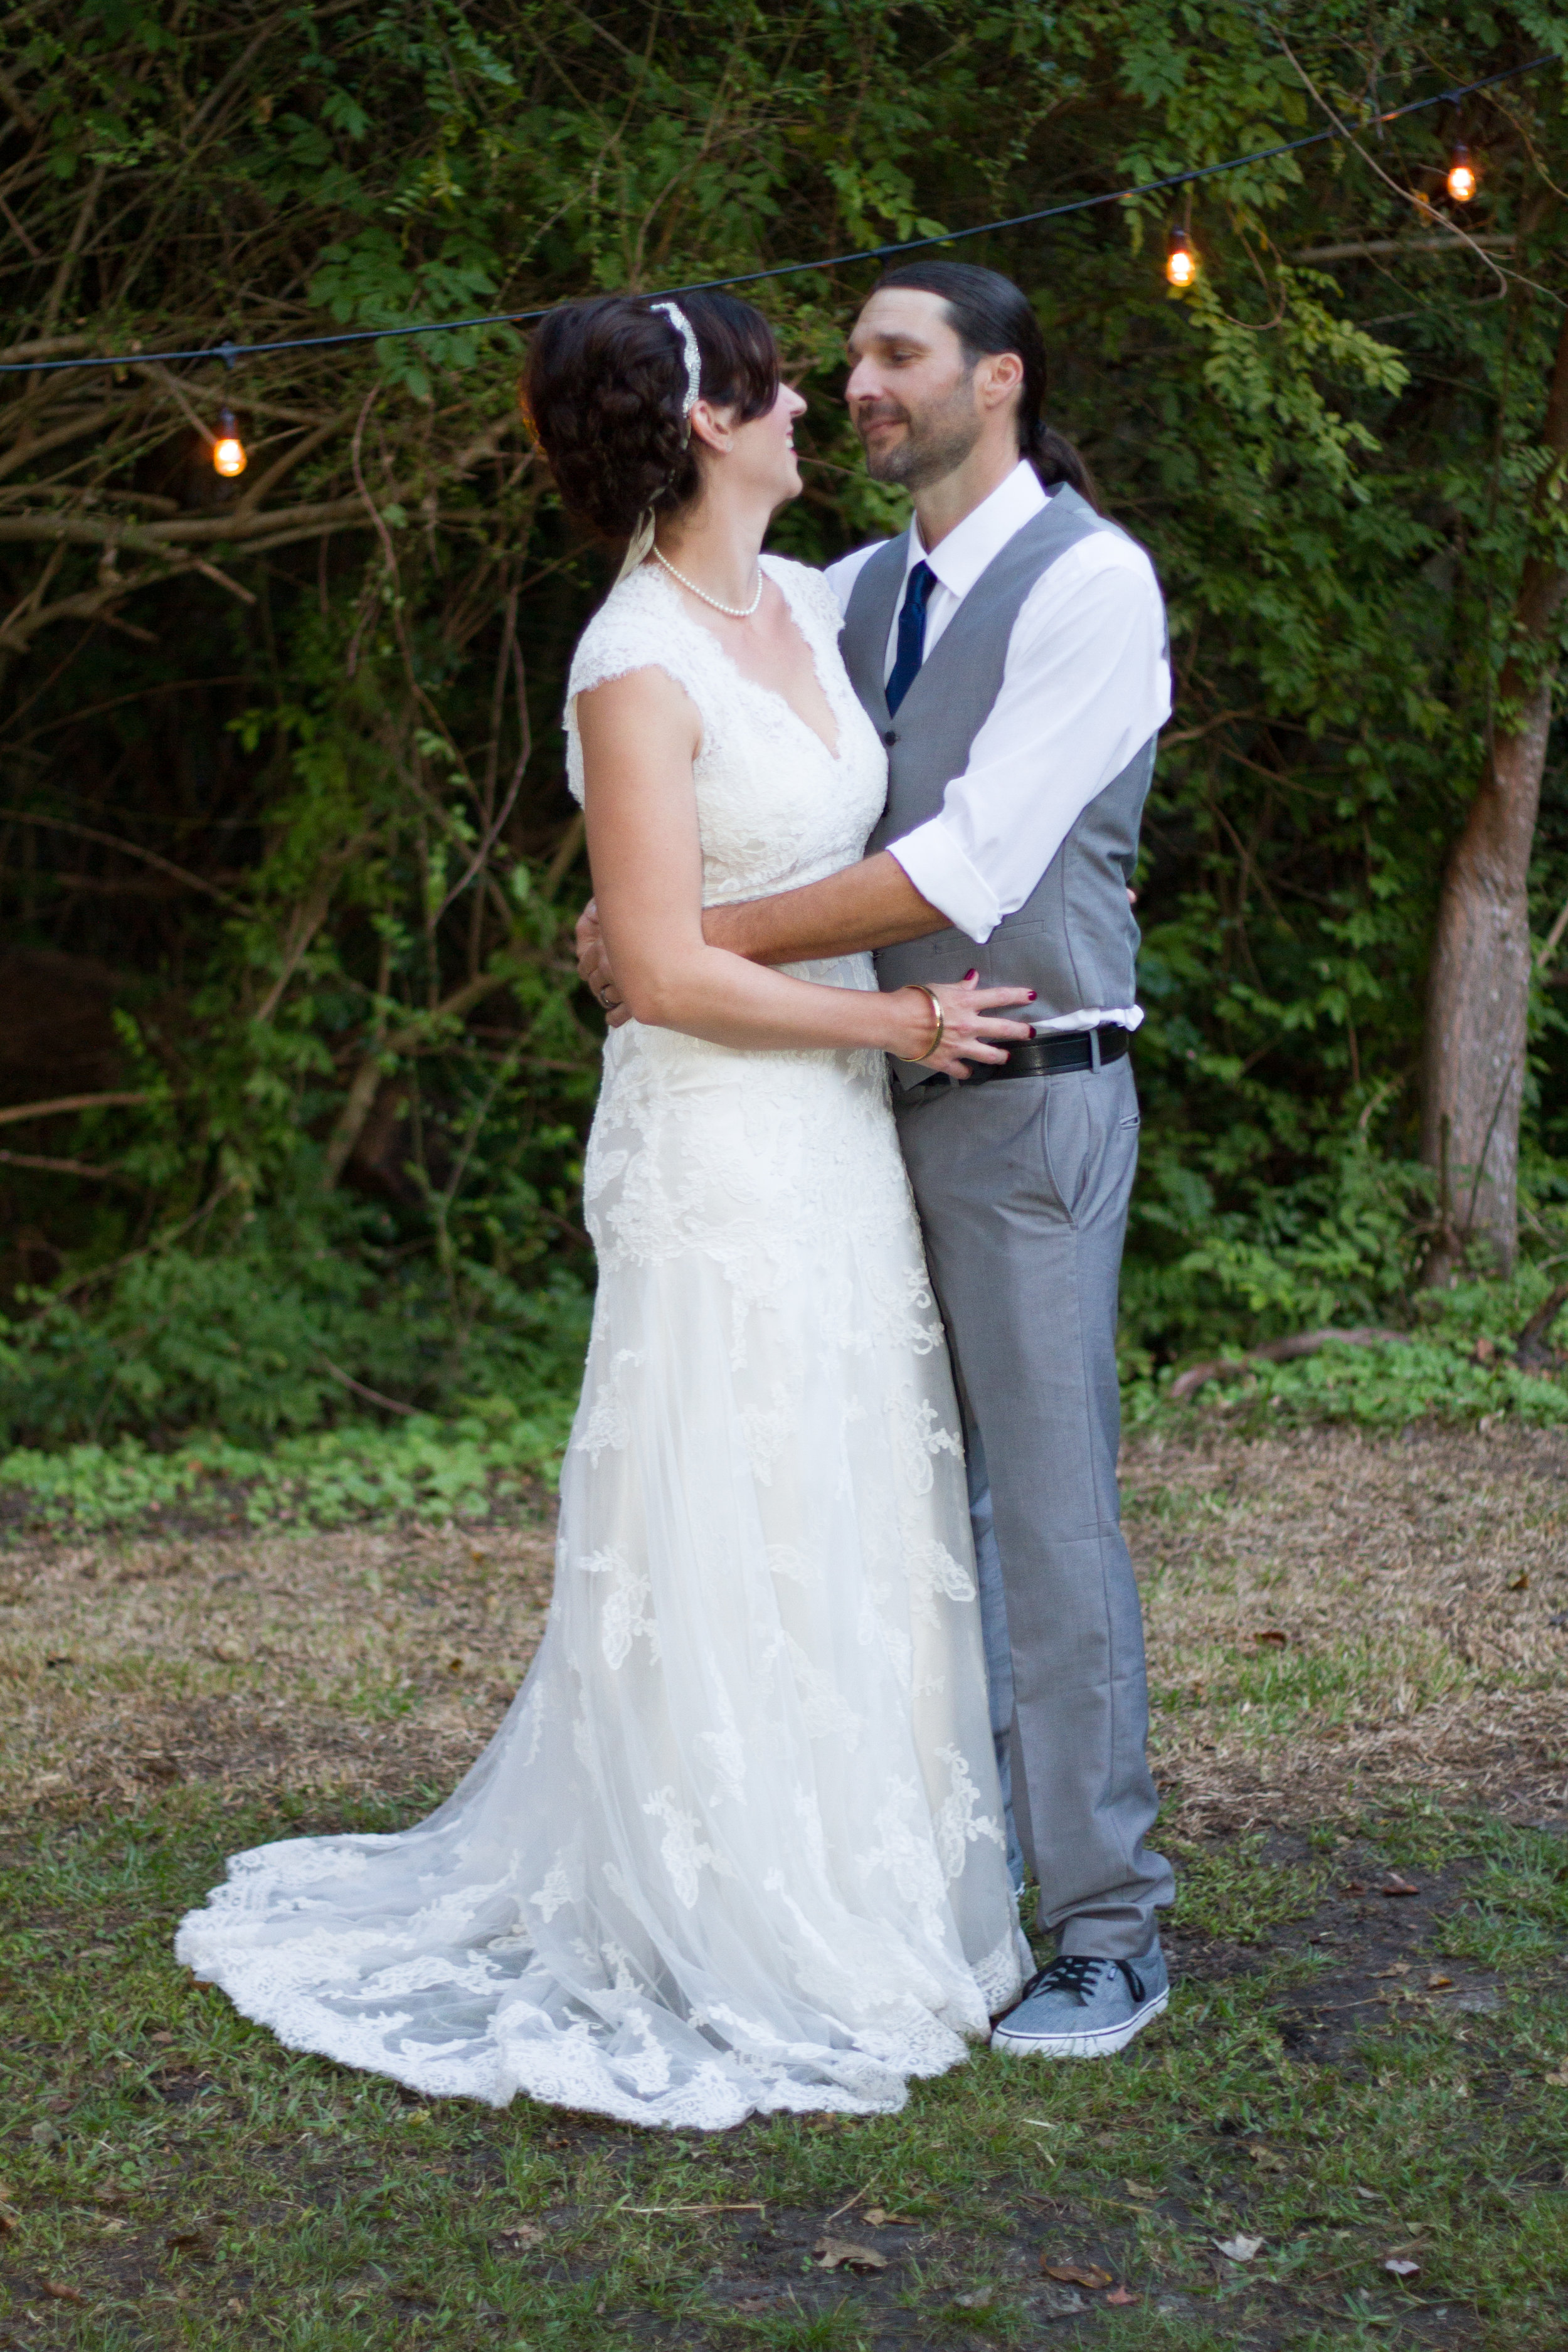 Jacqueline and Shawn Wedding (423 of 597).jpg